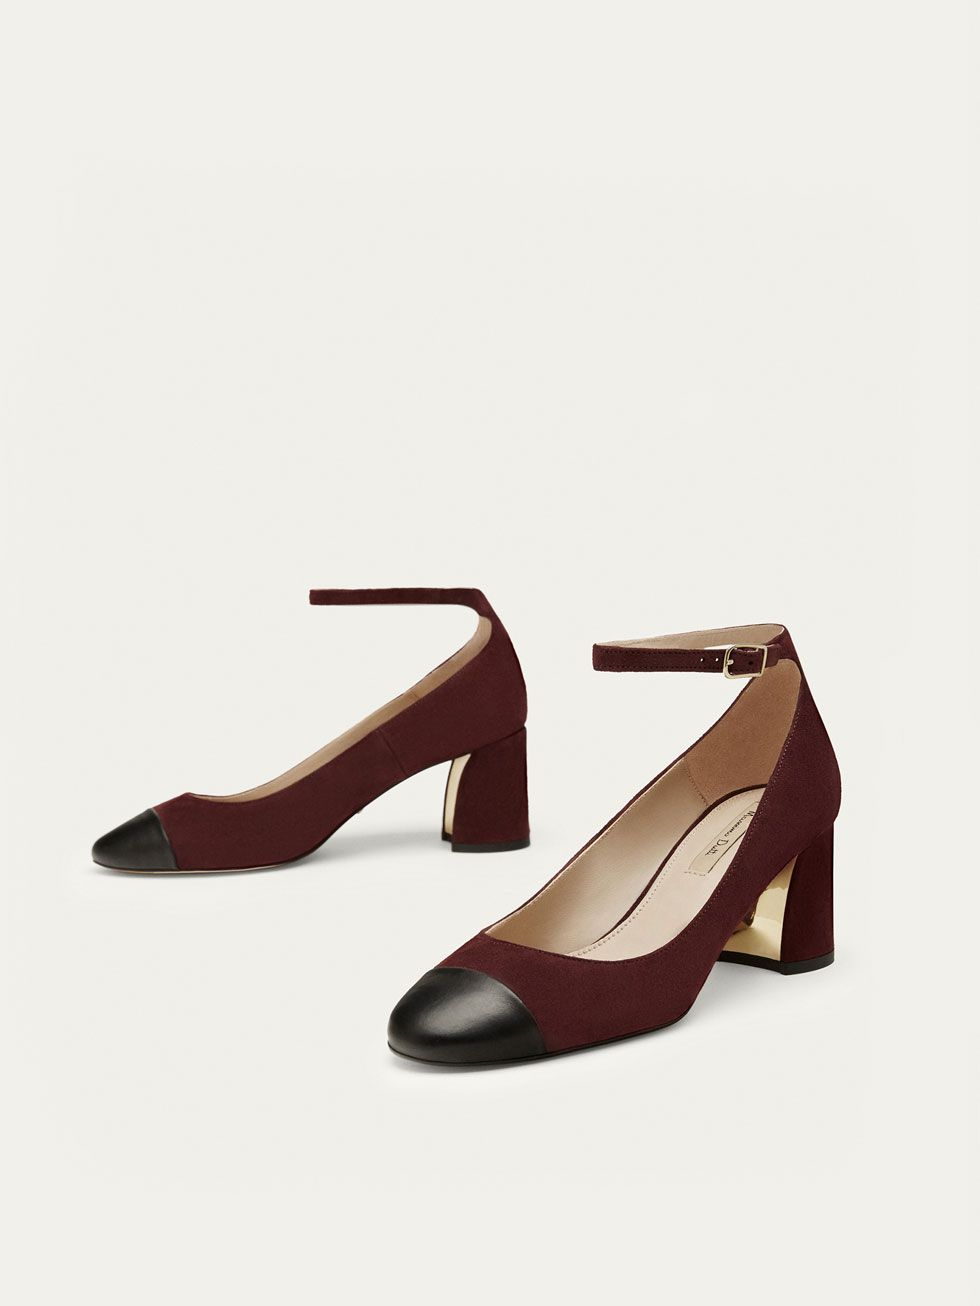 97c02d9a52 Spring Summer 2017 Women´s BURGUNDY LEATHER HIGH HEEL COURT SHOES at  Massimo Dutti for 165. Effortless elegance!